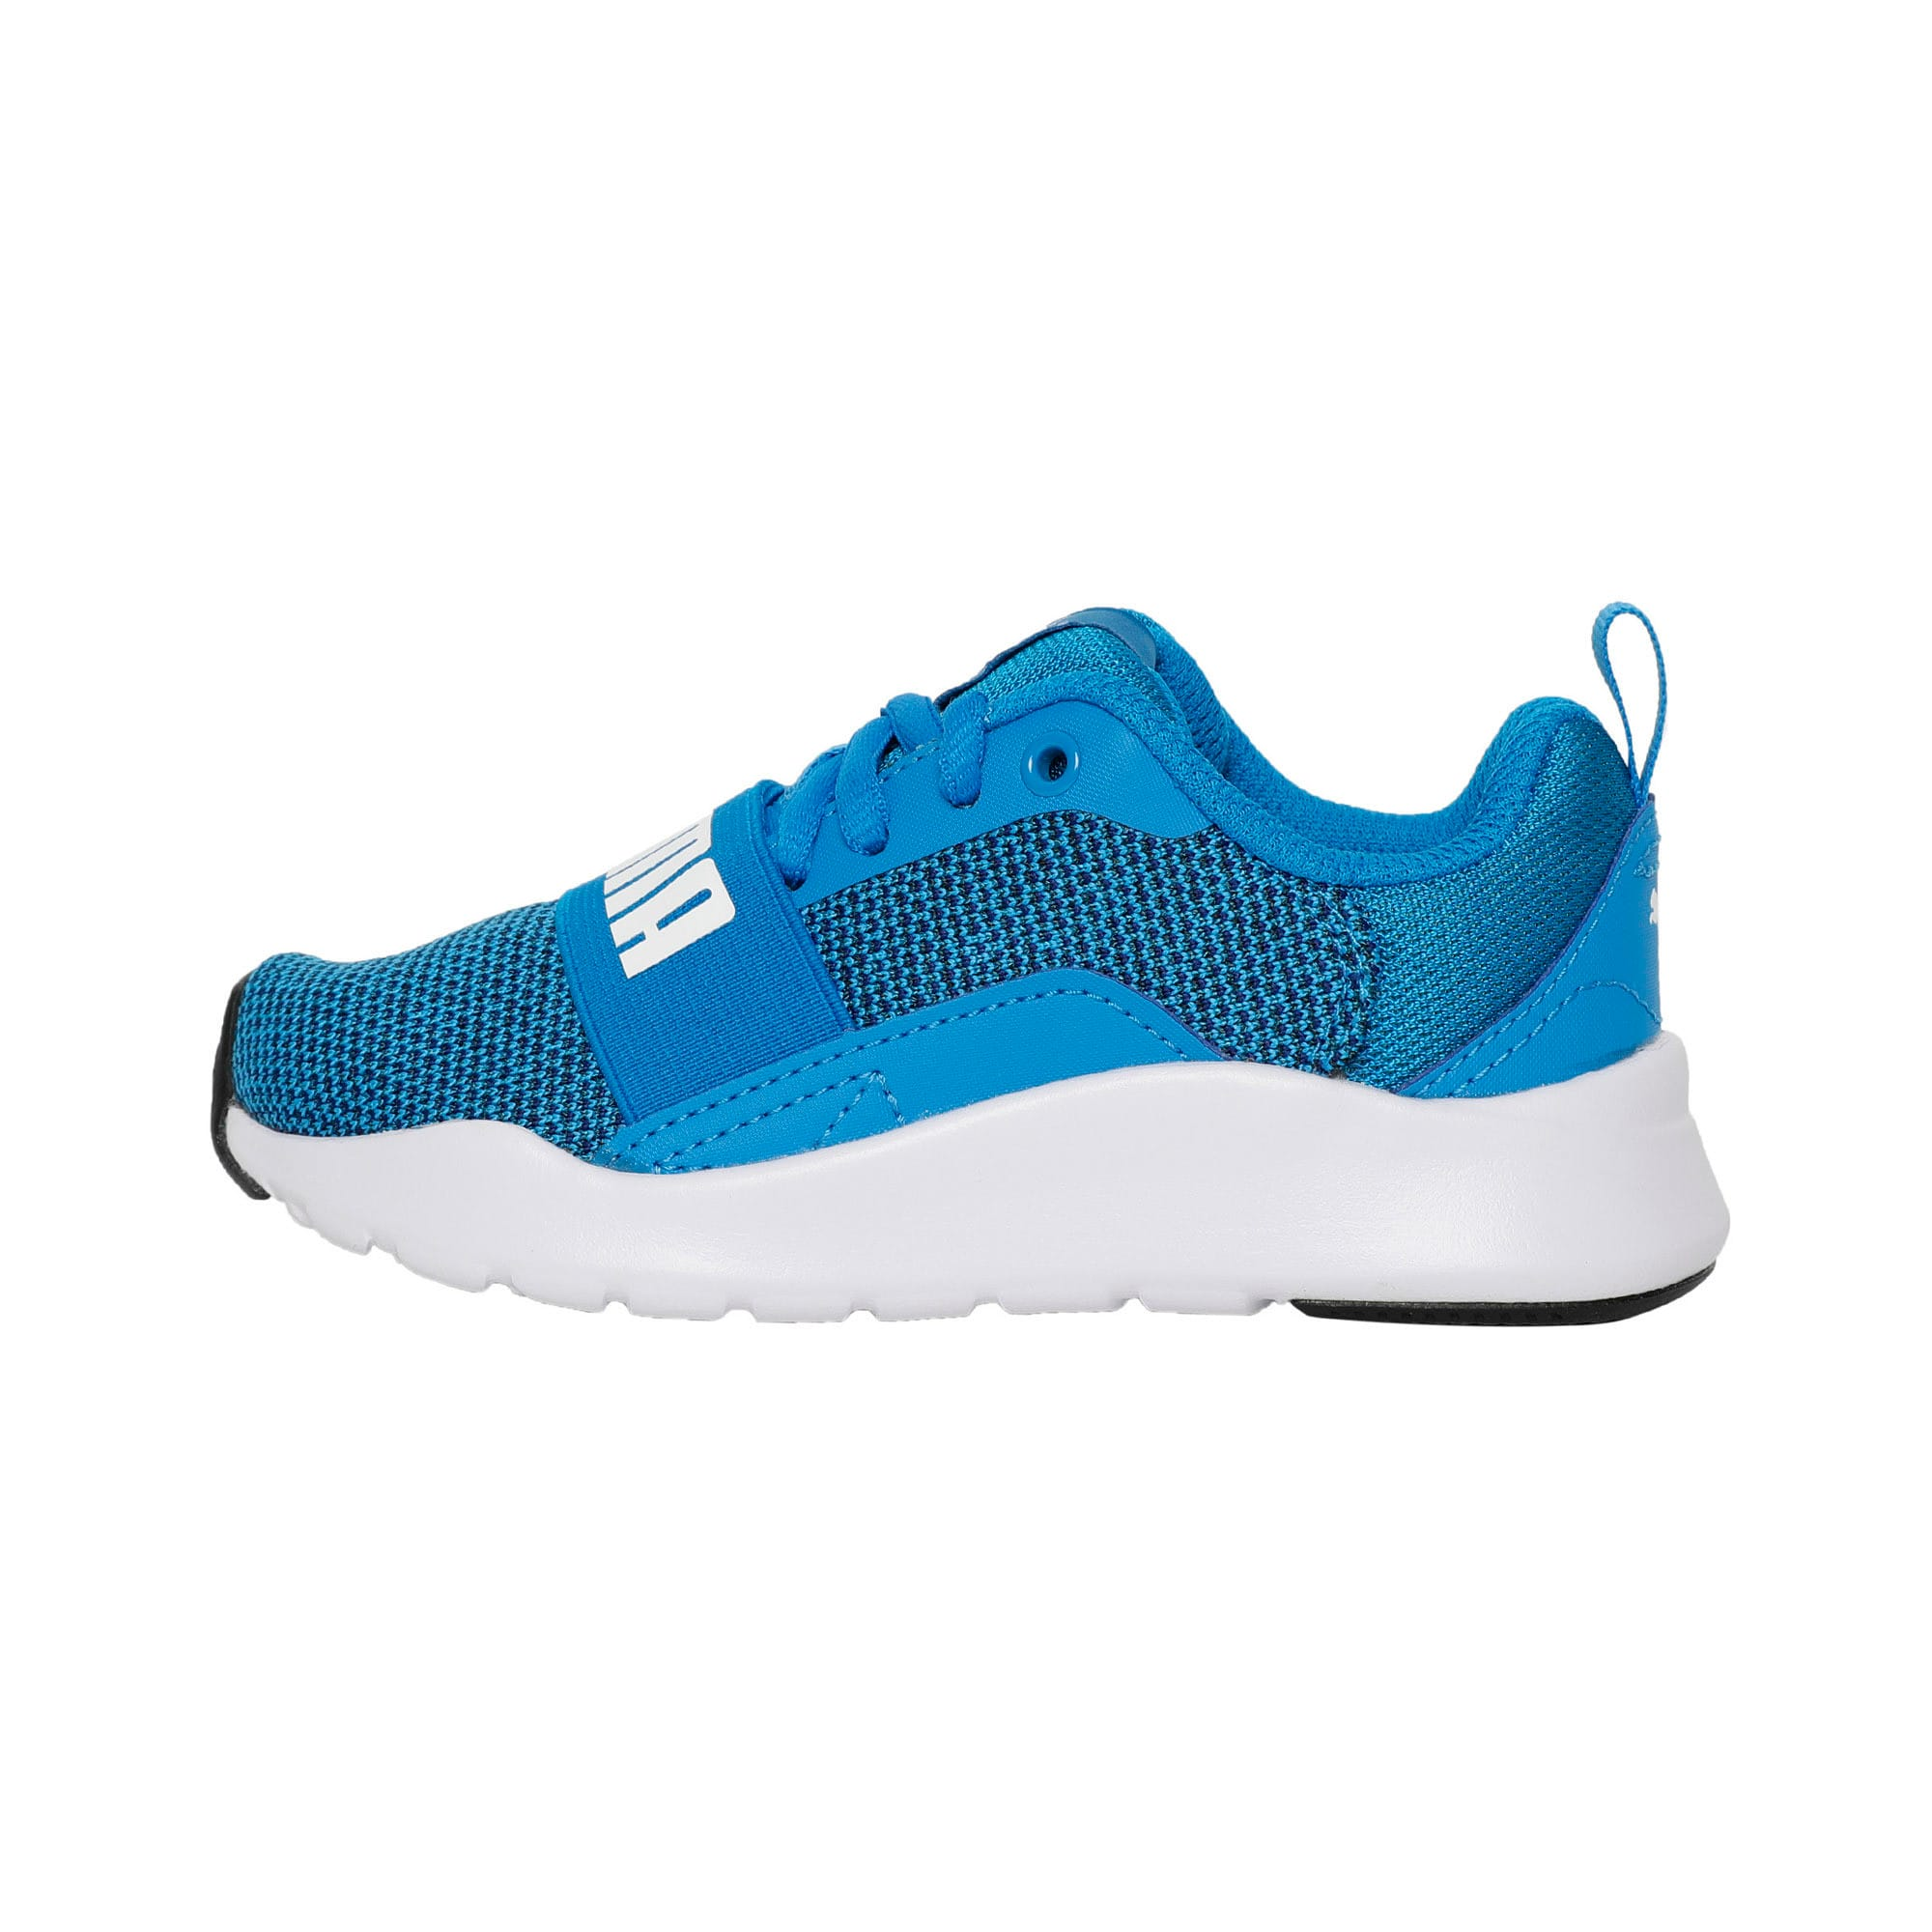 Thumbnail 1 of Wired Knit Kids' Trainers, Indigo Bunting-Puma White, medium-IND